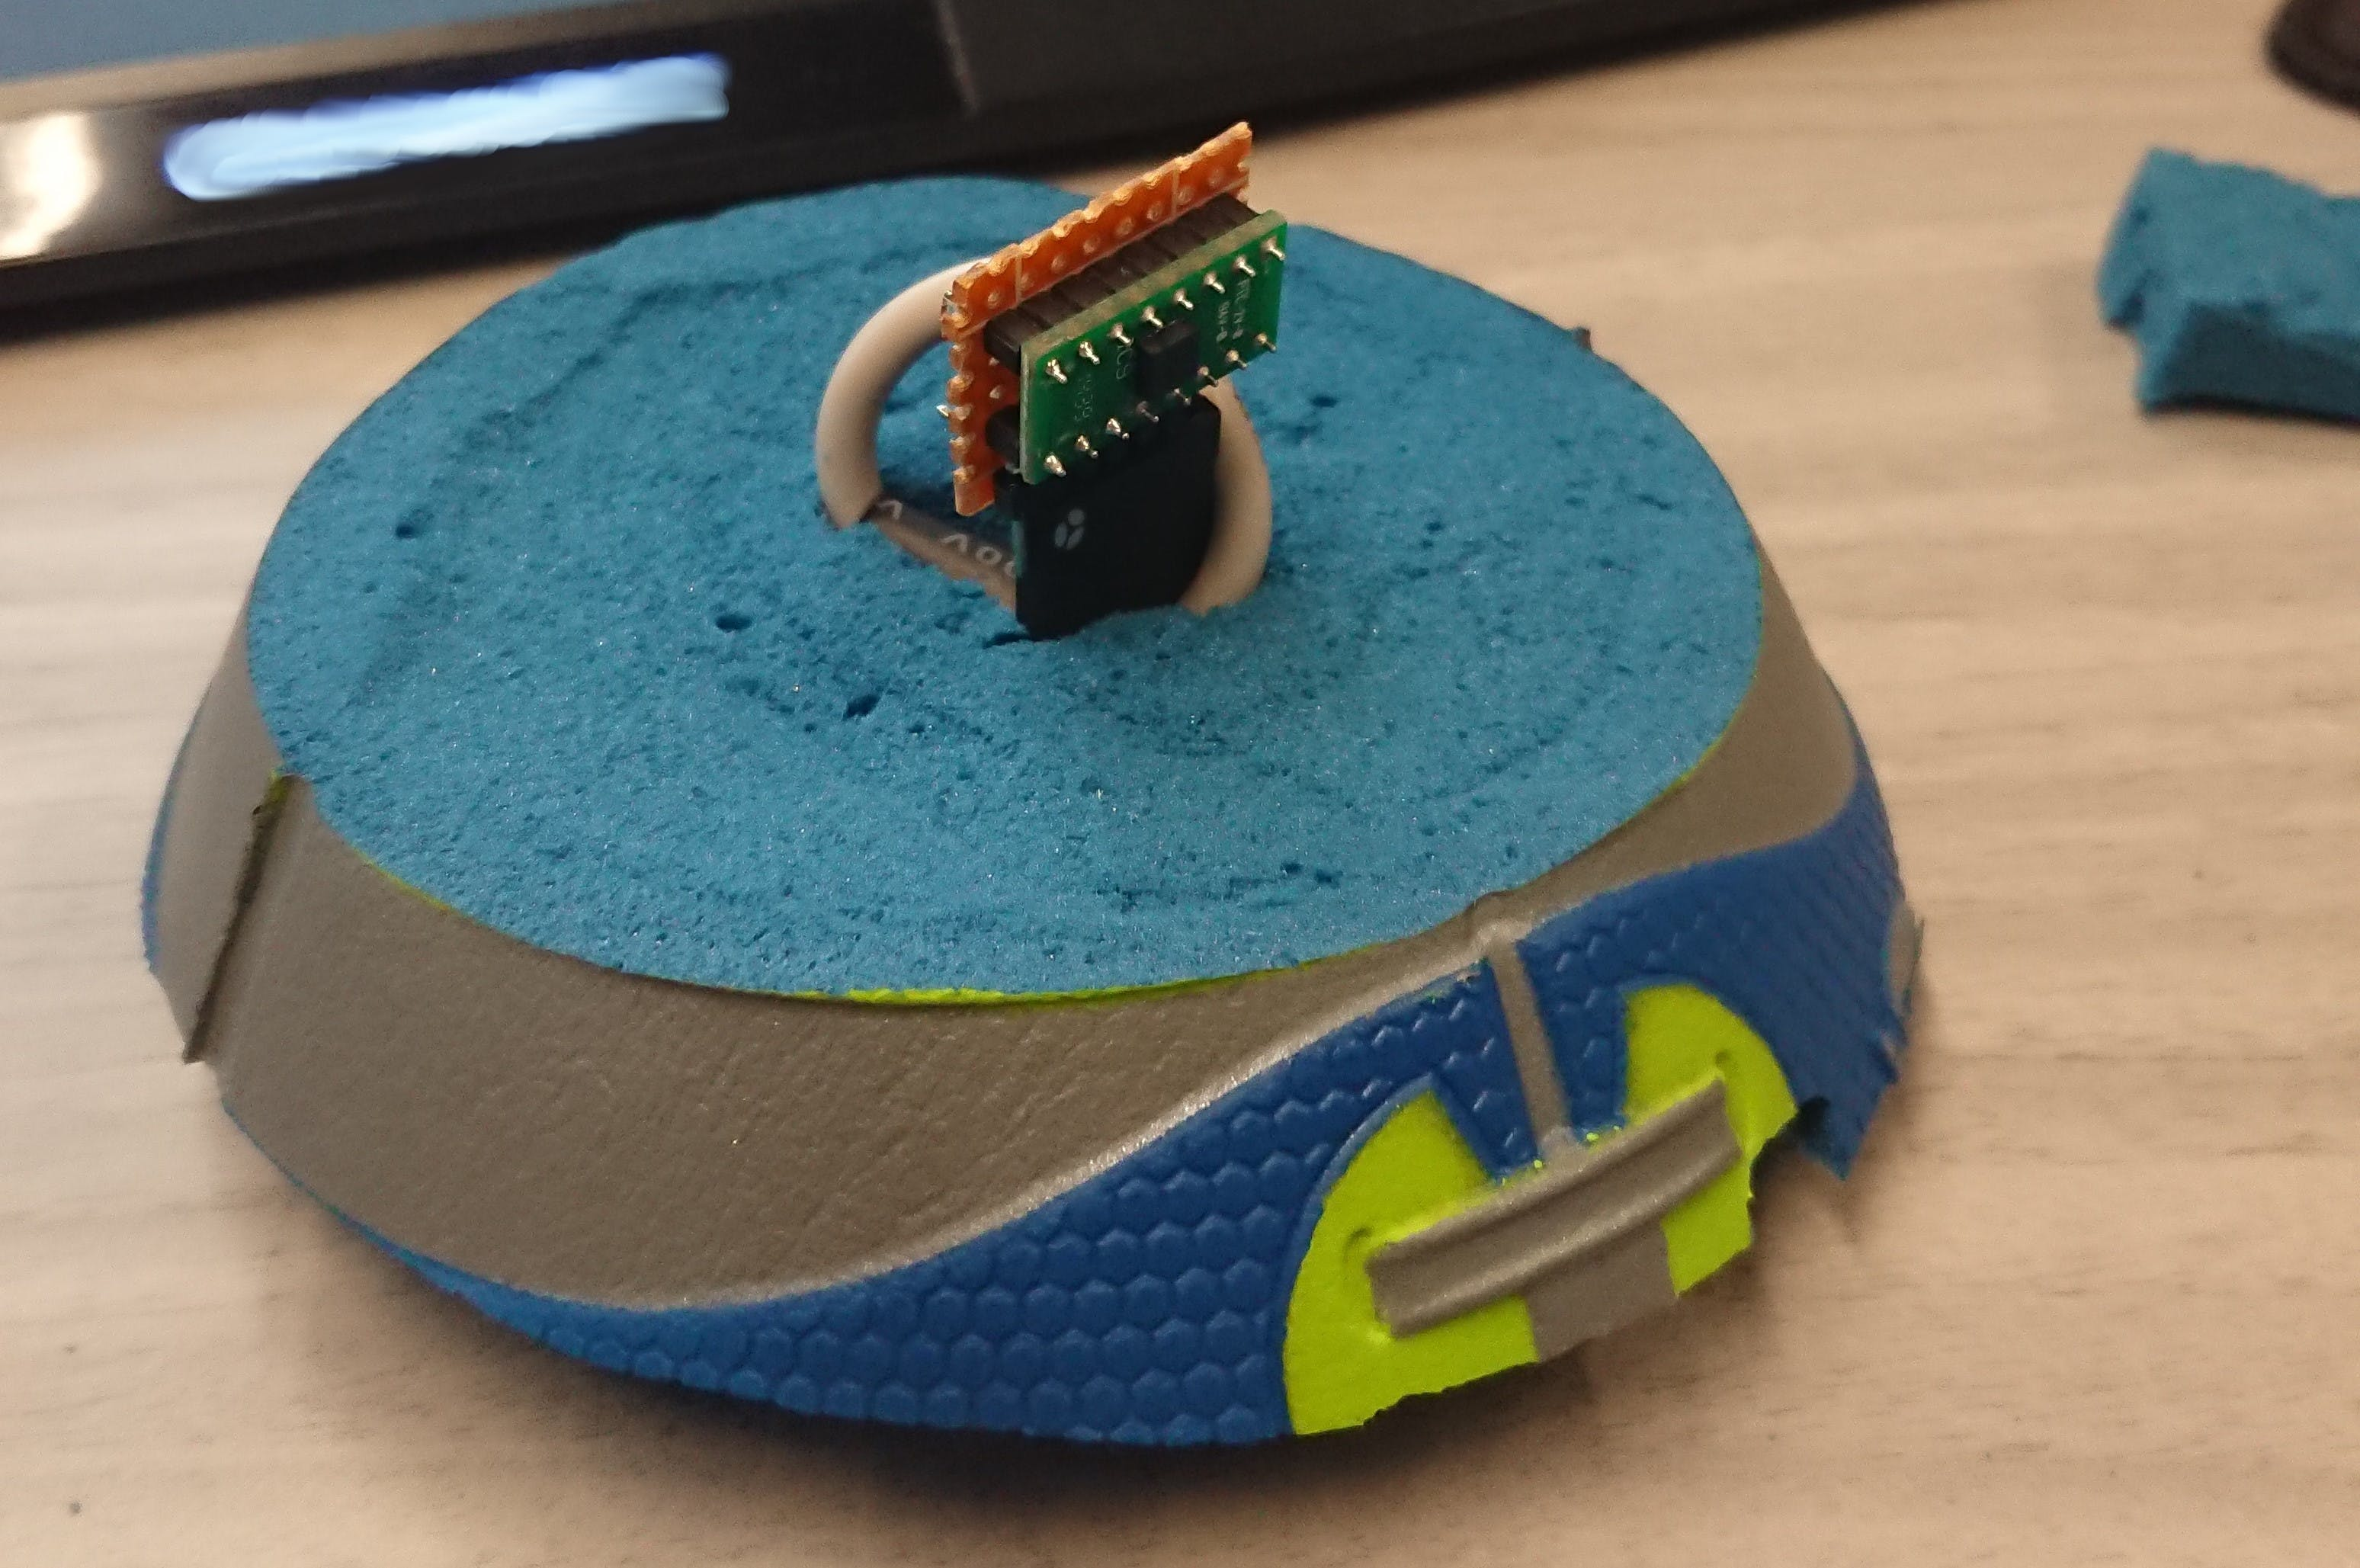 Accelerometer in its portion of the ball before full assembly